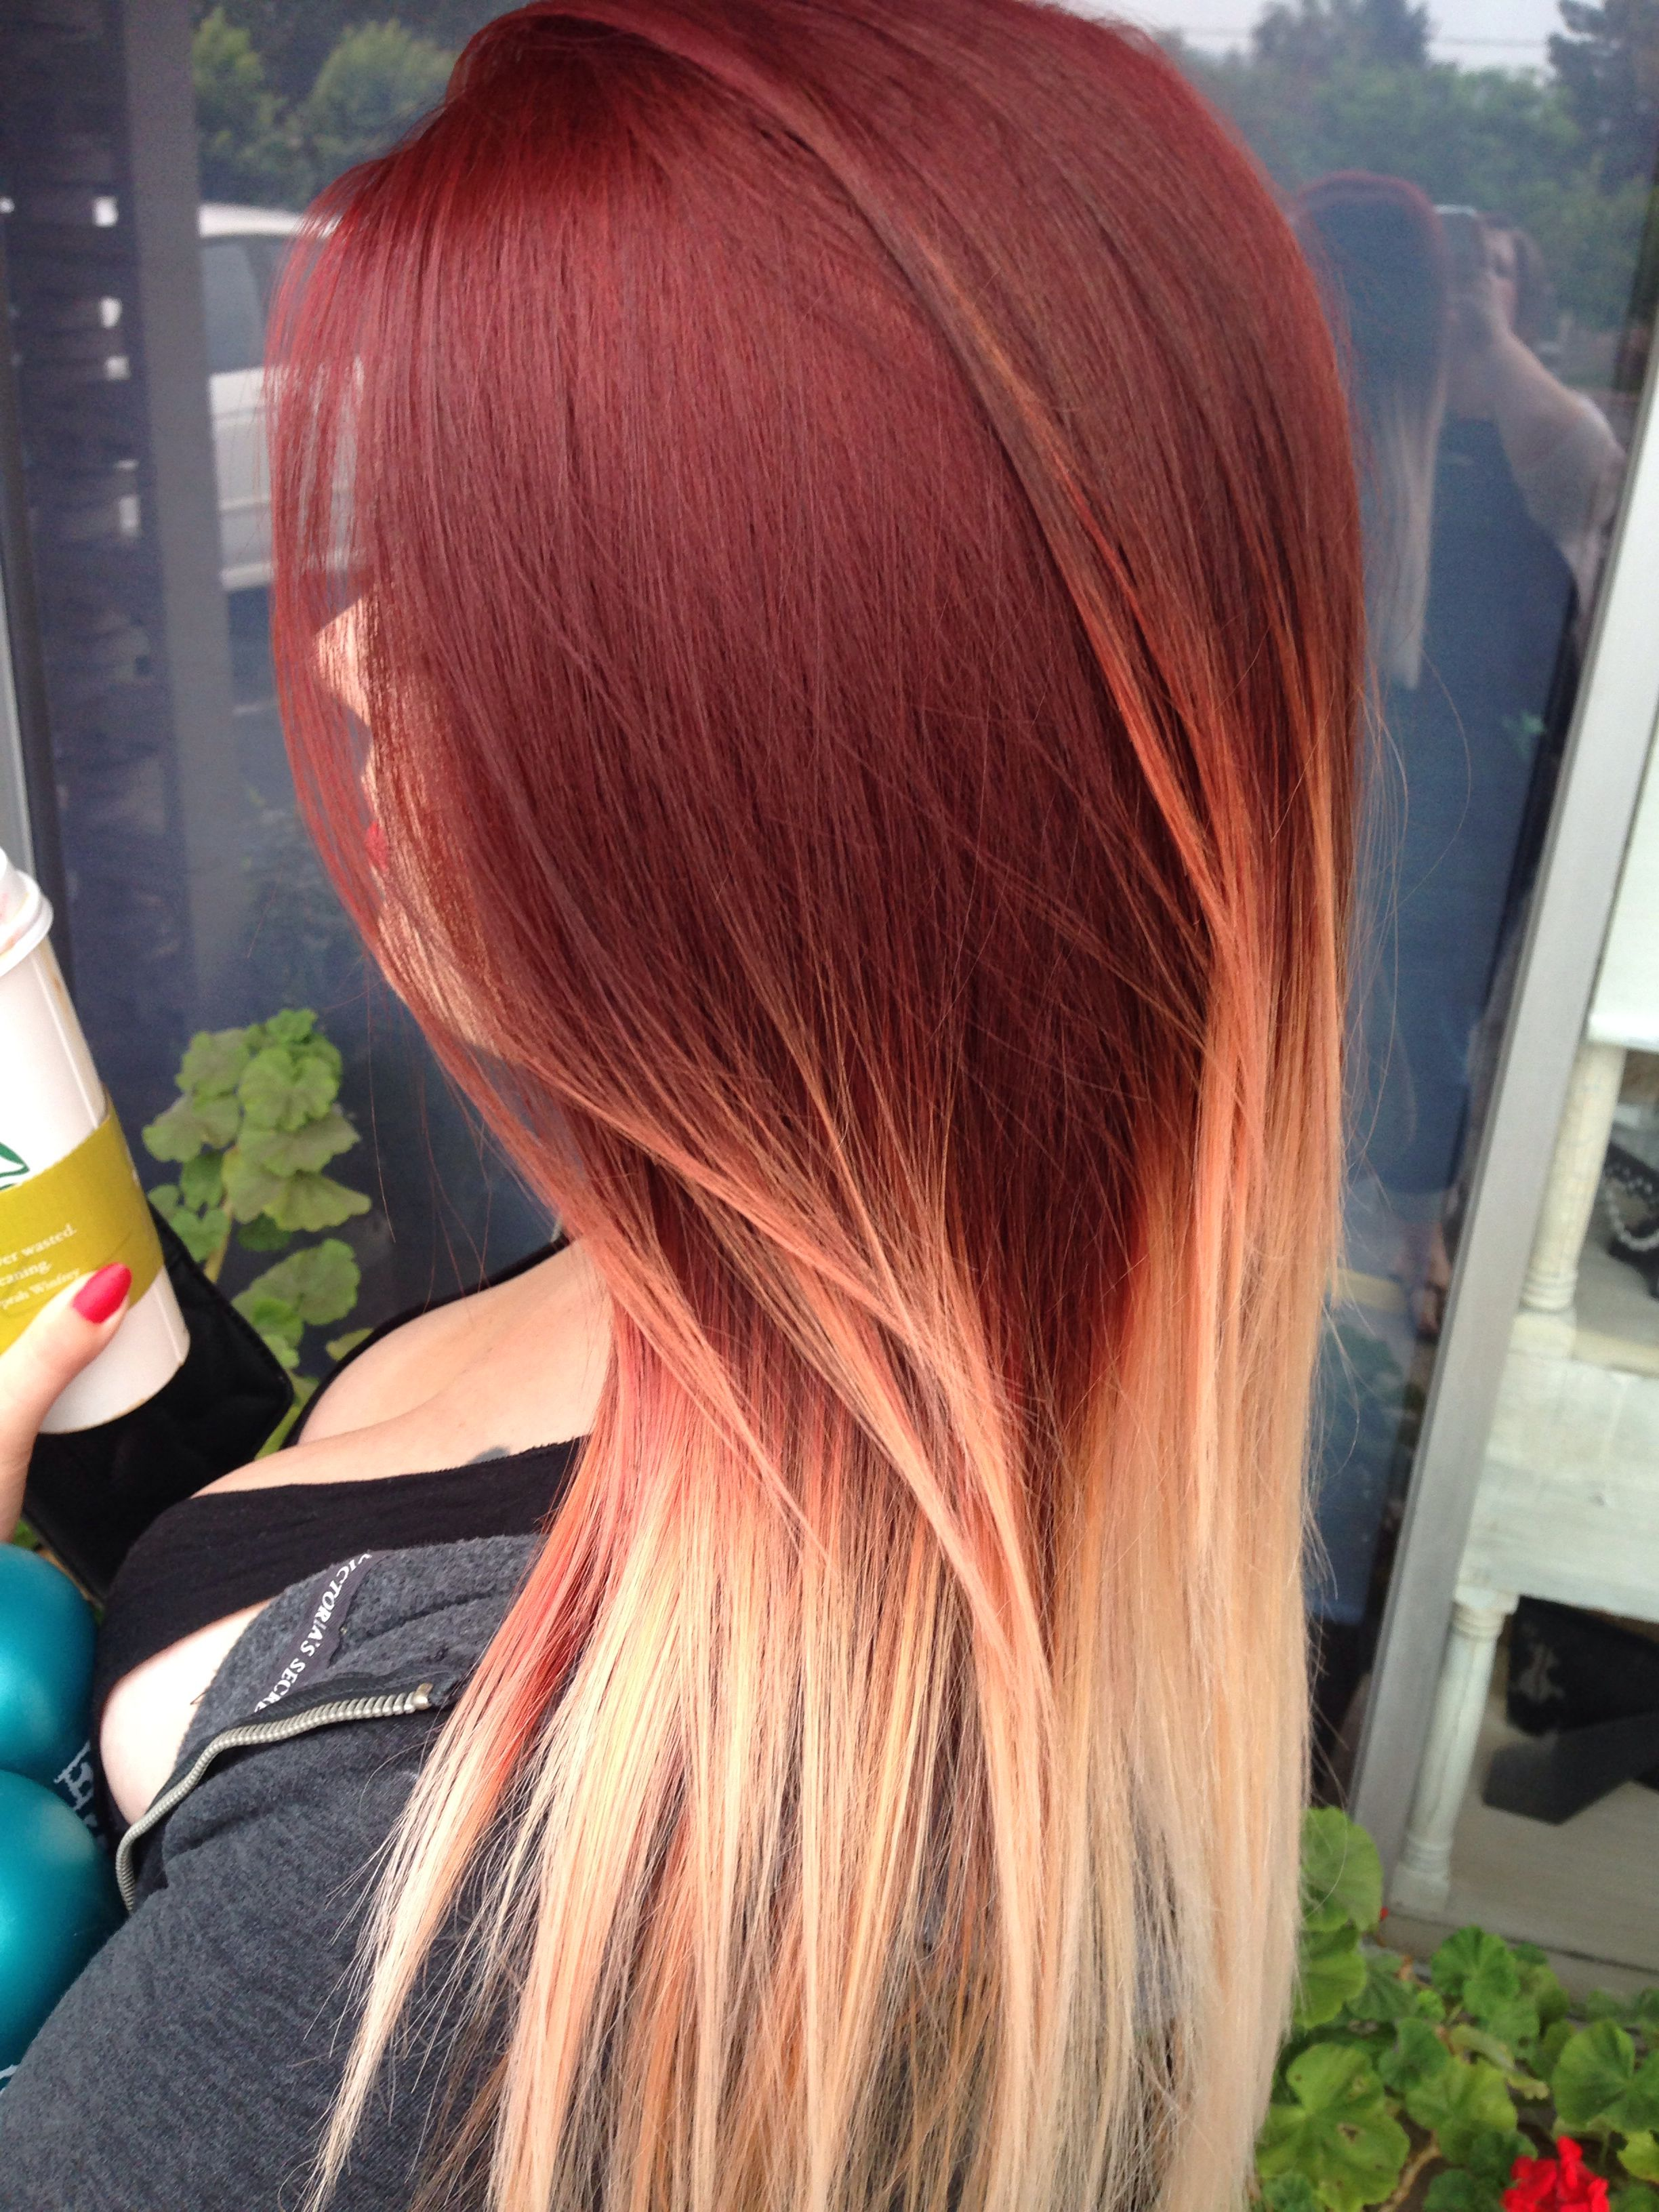 Red And Blonde Ombre Red Blonde Hair Ombre Hair Blonde Red To Blonde